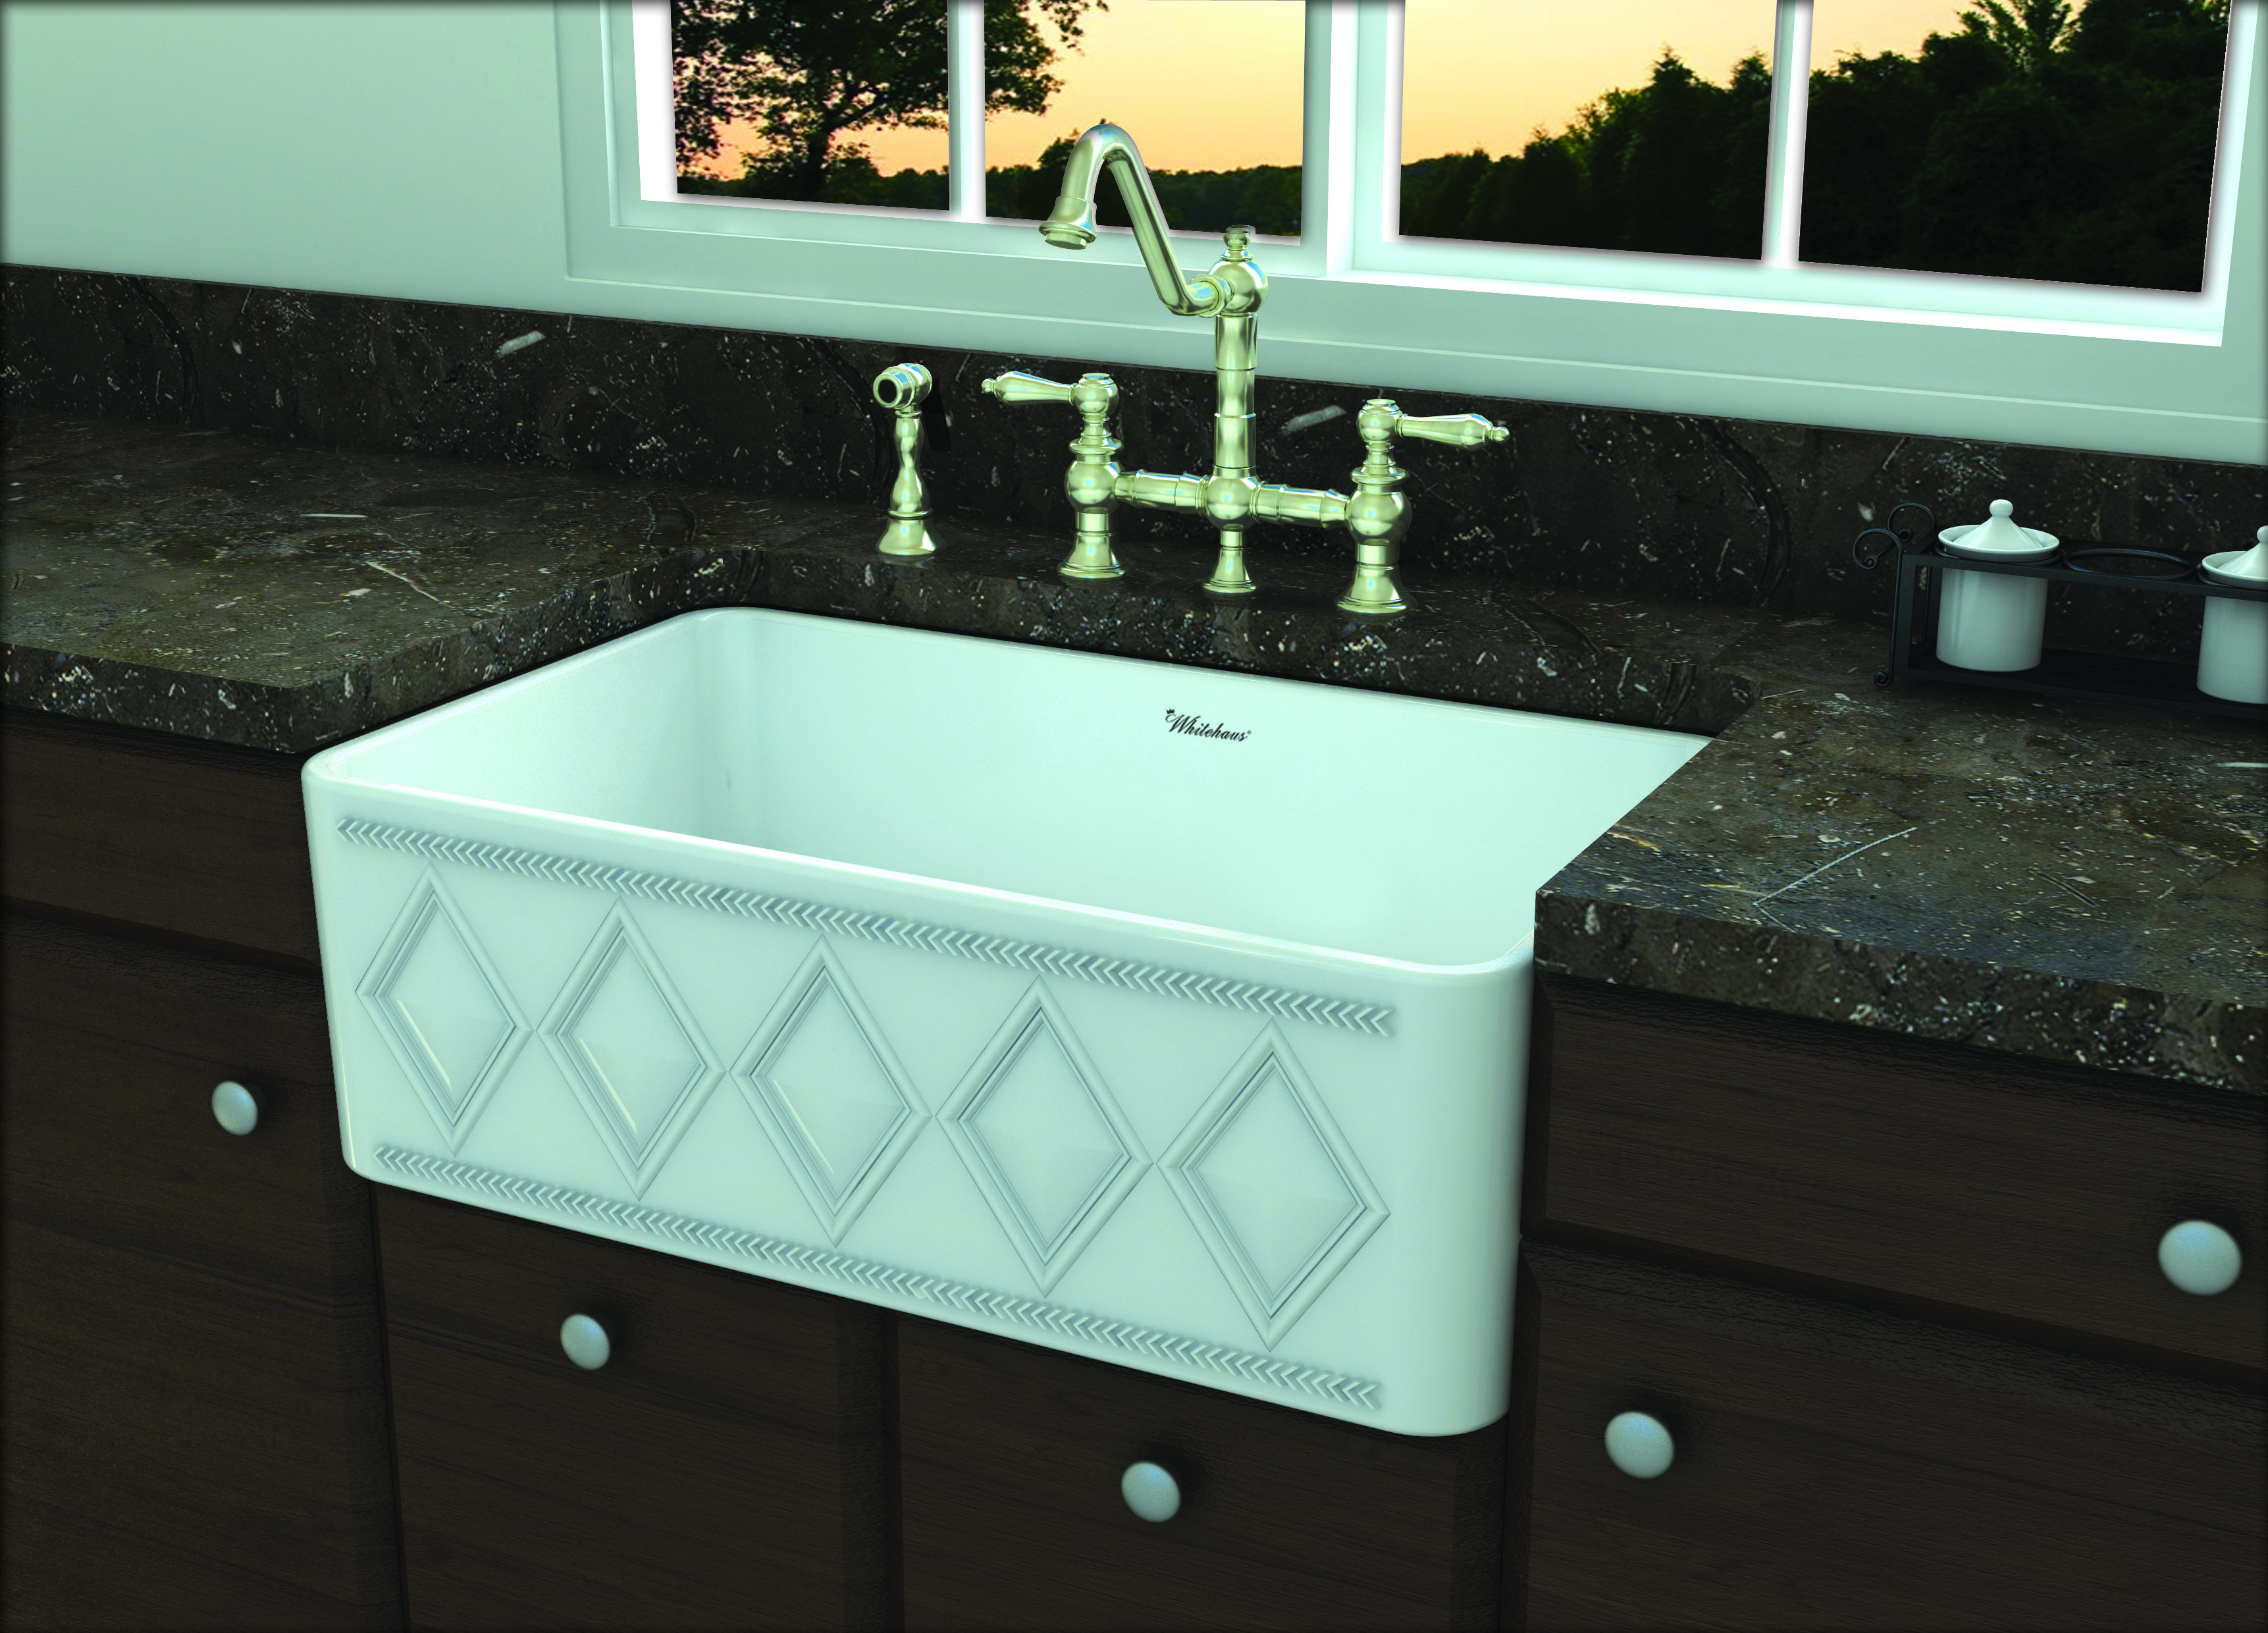 Buy Farmhouse Sinks | Sinks, Kitchens and House